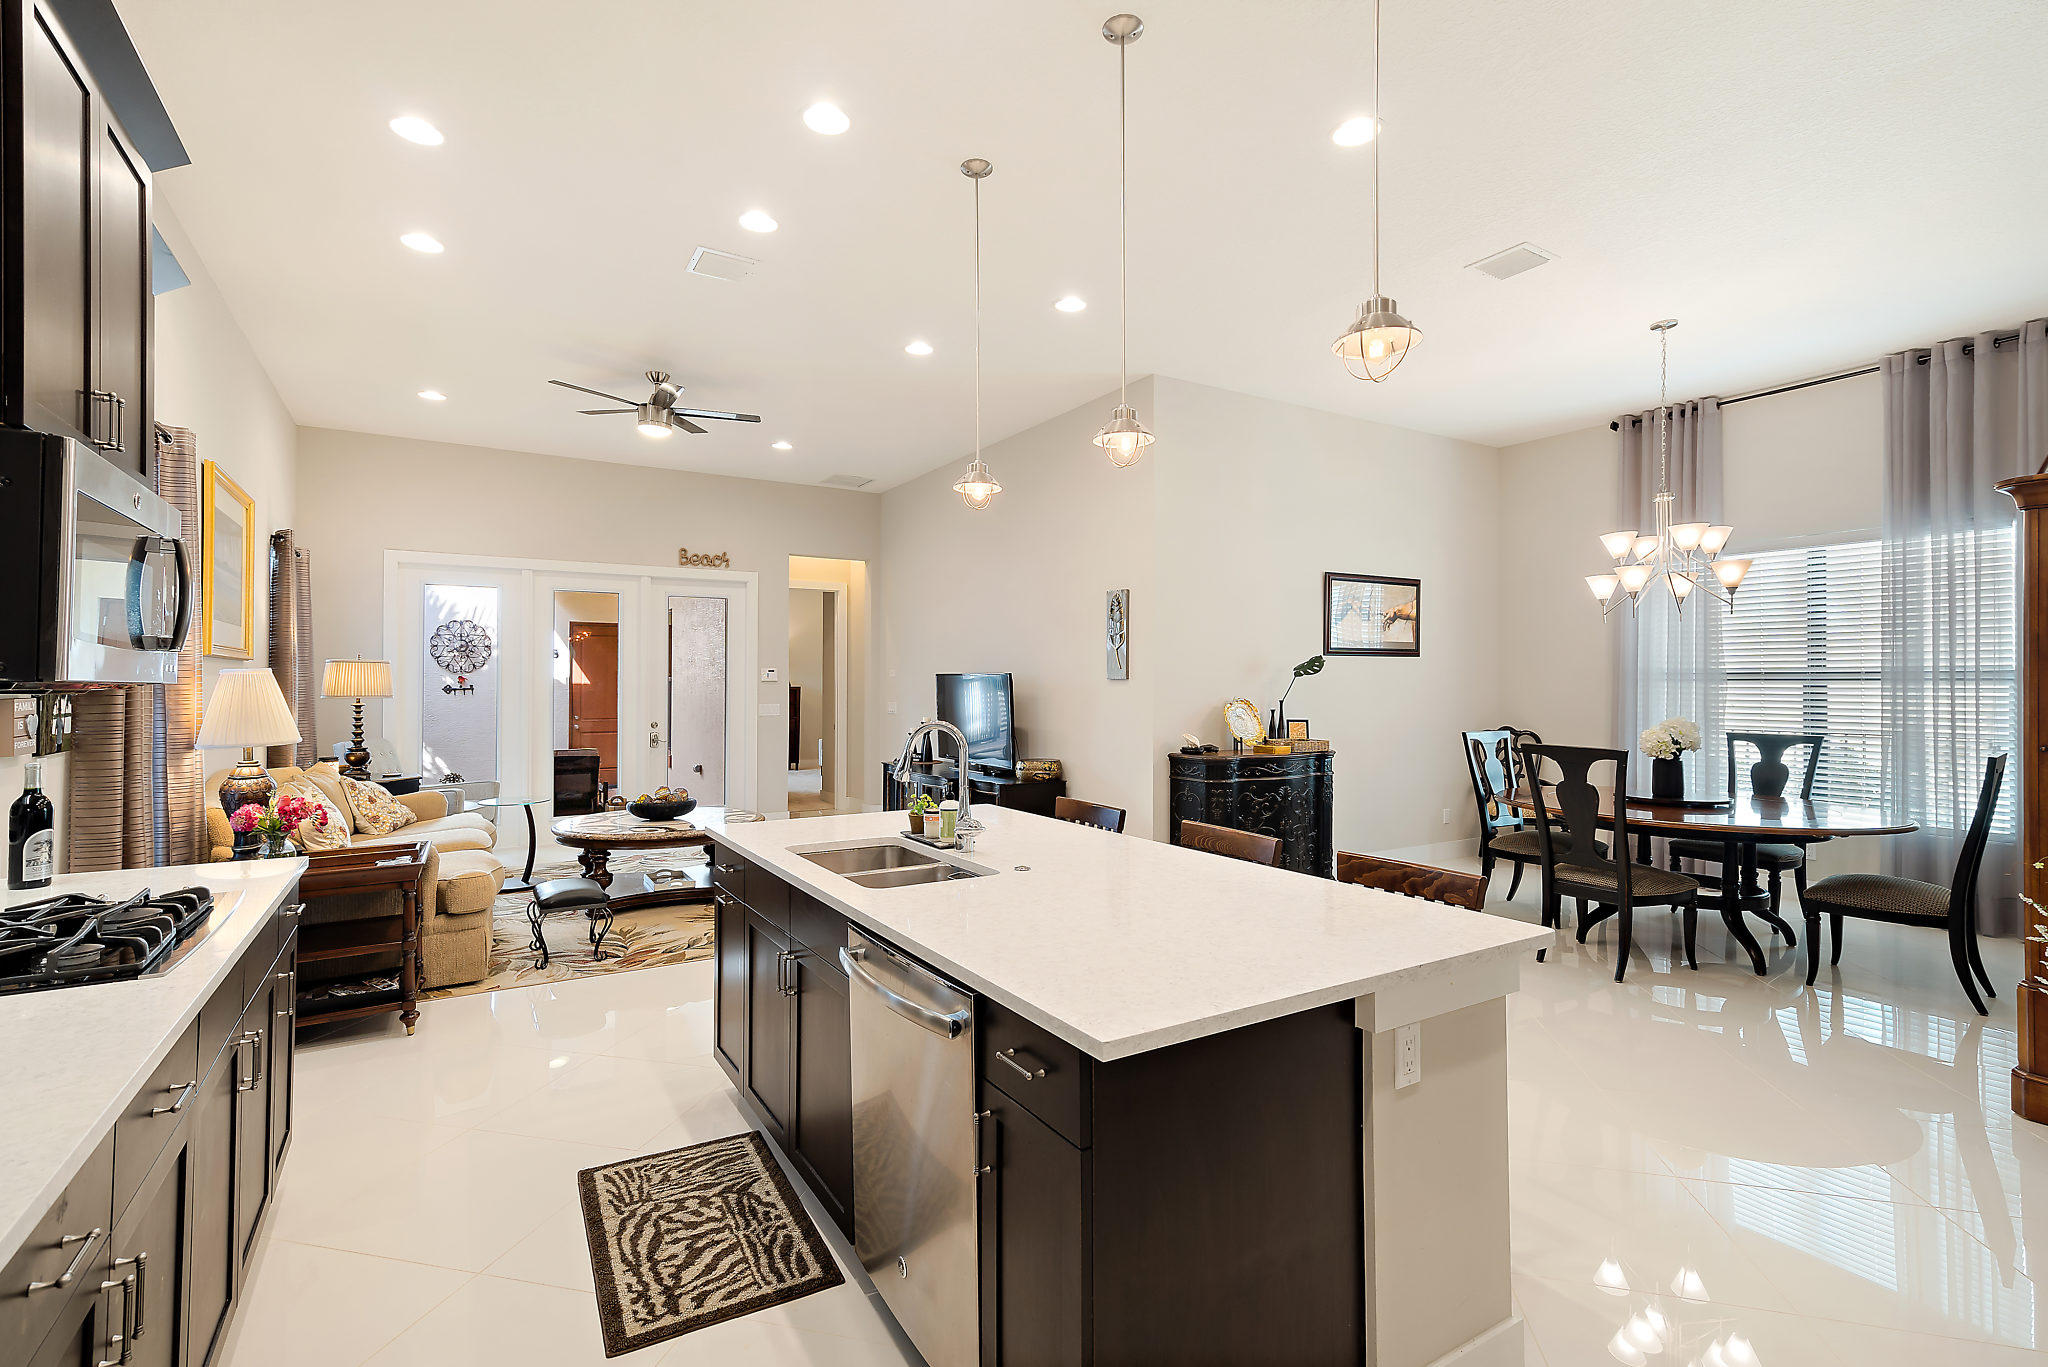 New Home for sale at 5033 Grandiflora Road in Palm Beach Gardens